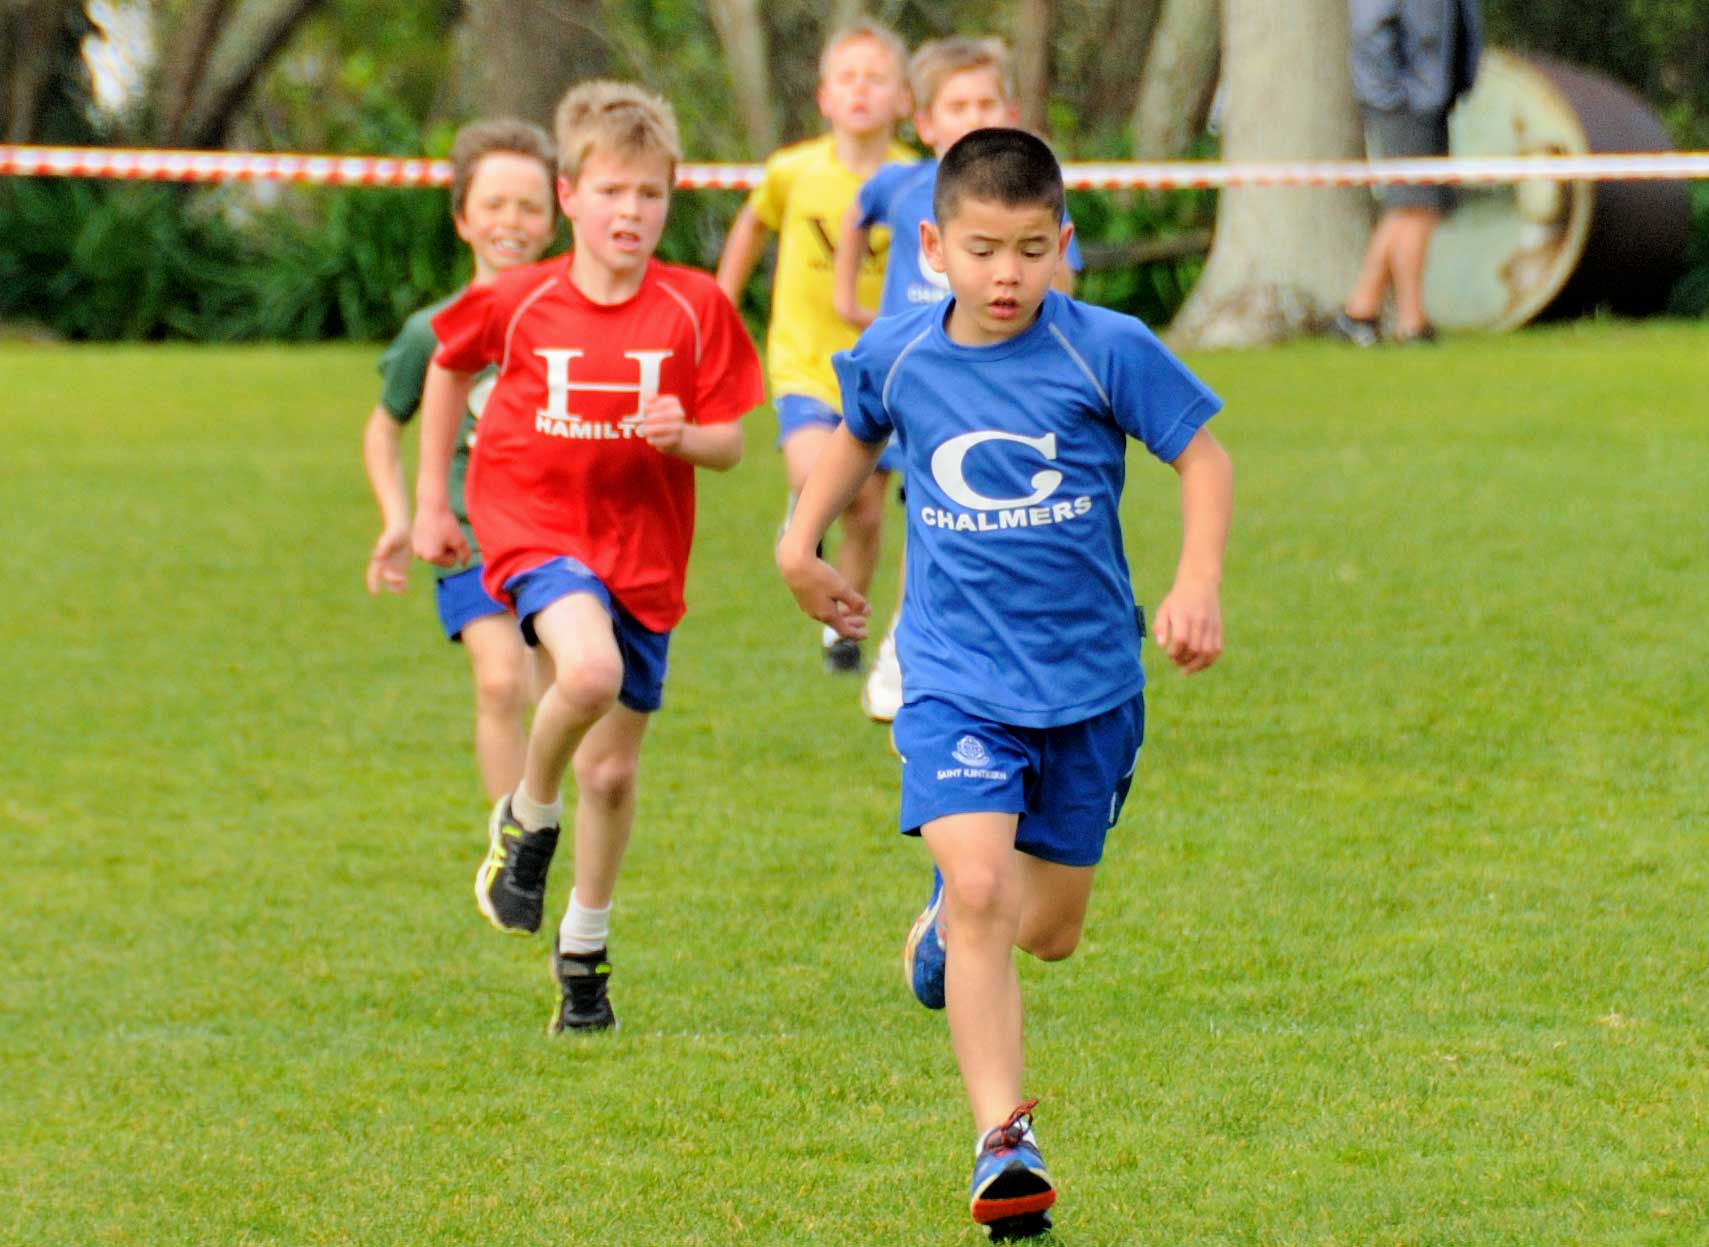 Saint-Kentigern-Boys'-School-Sports-Cross-Country.jpg